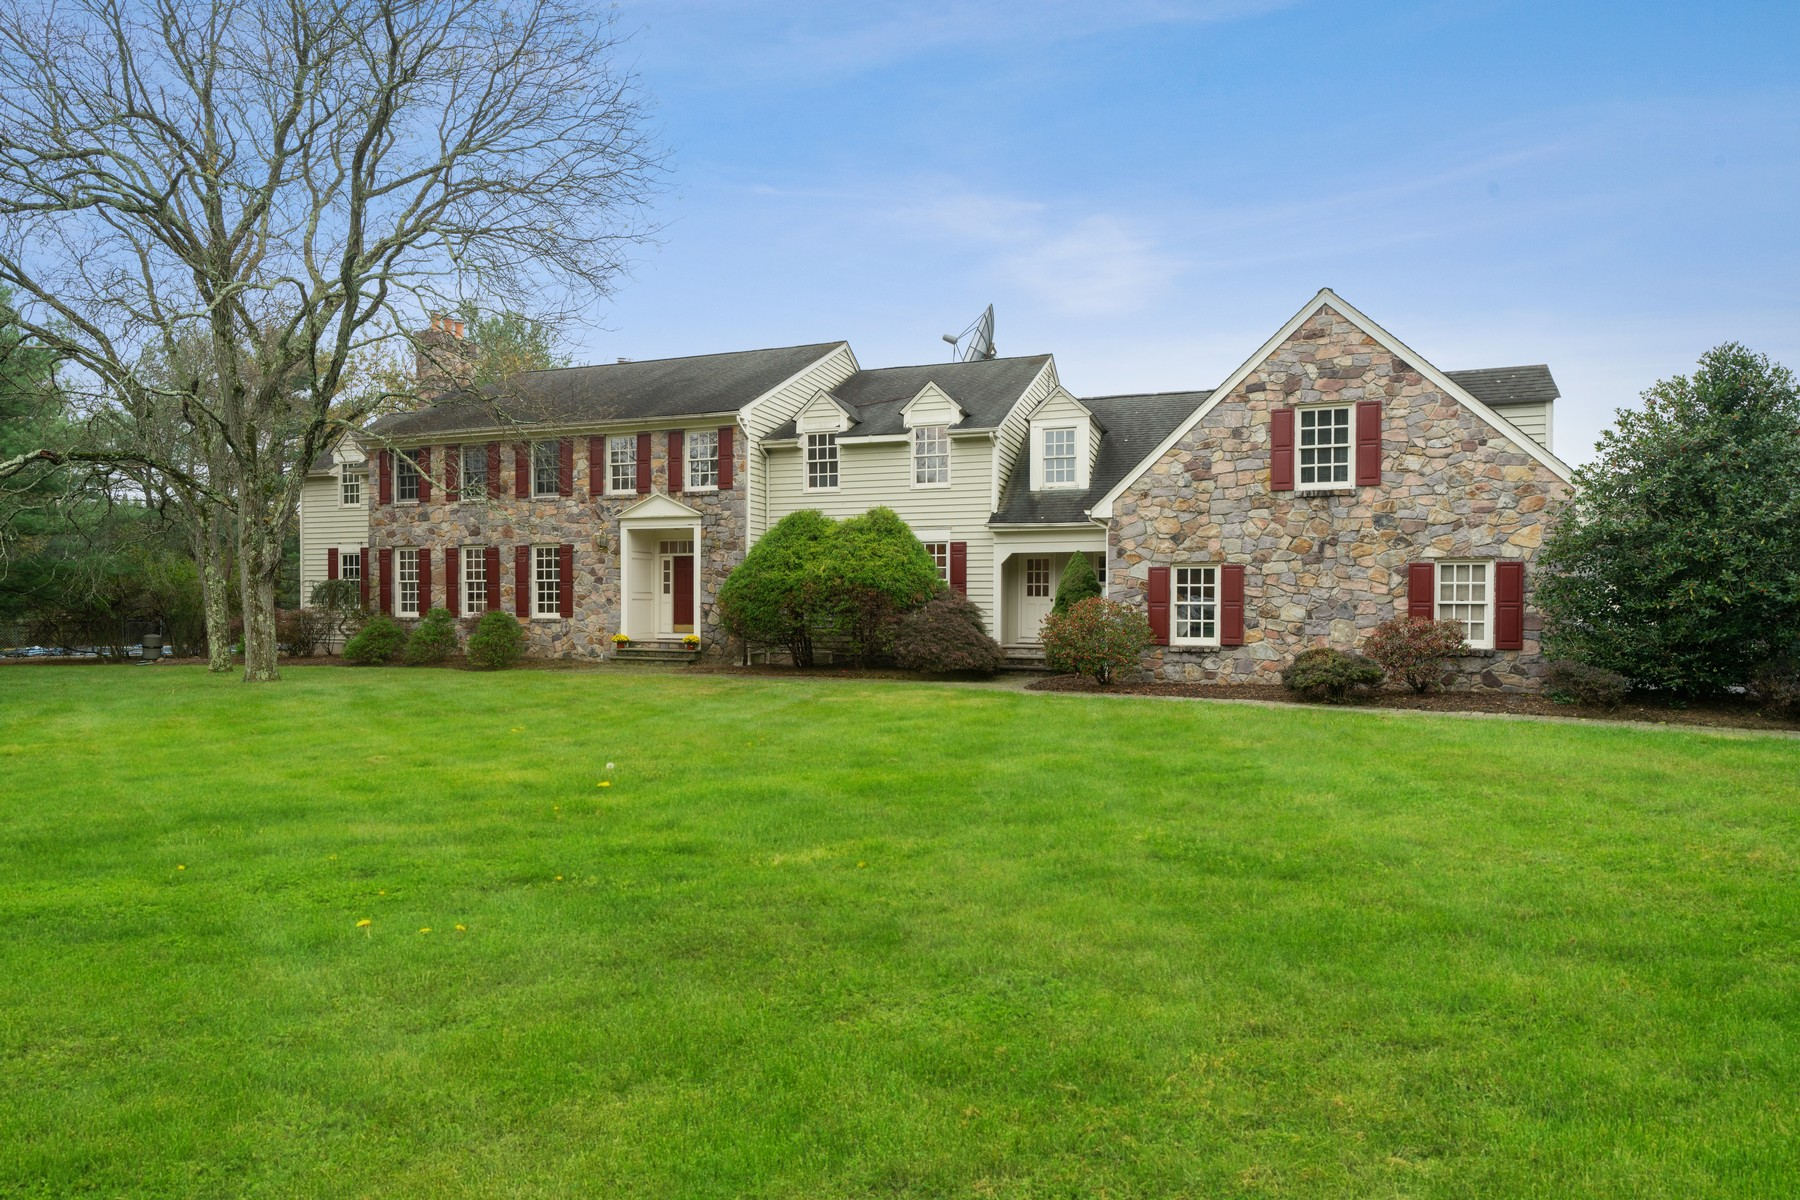 Single Family Homes for Sale at Grand Custom Bucks County Colonial 17 Clive Lane, Basking Ridge, New Jersey 07920 United States